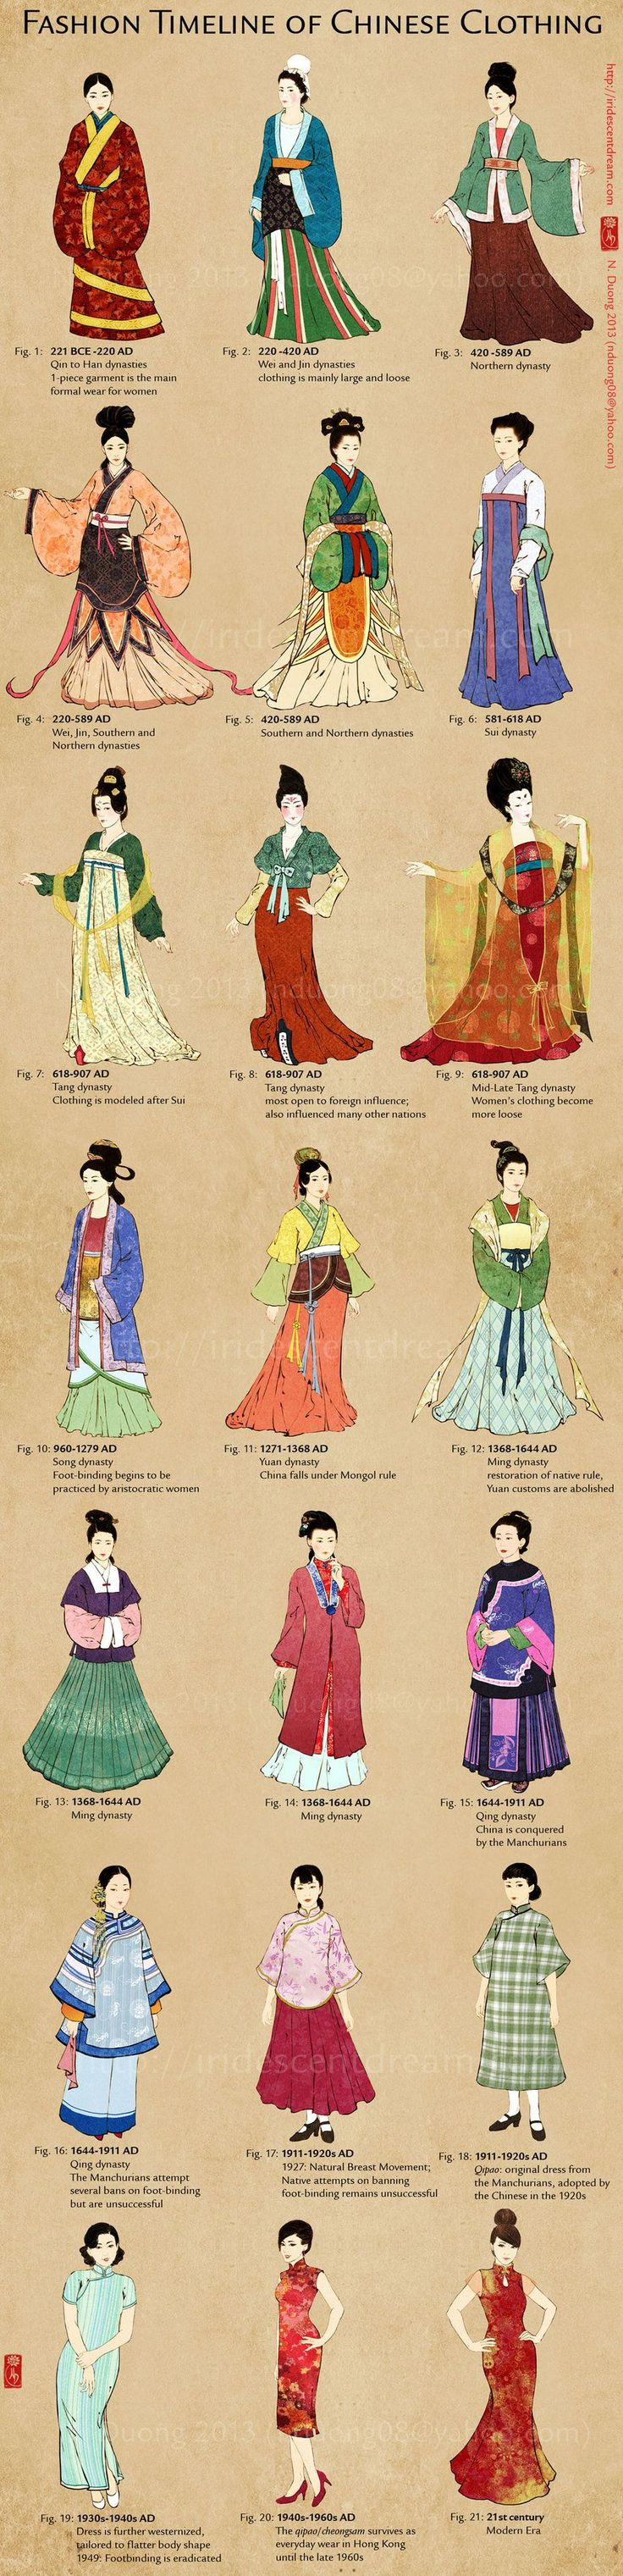 Hair, clothing and makeup fashions in Asian history (more through link)